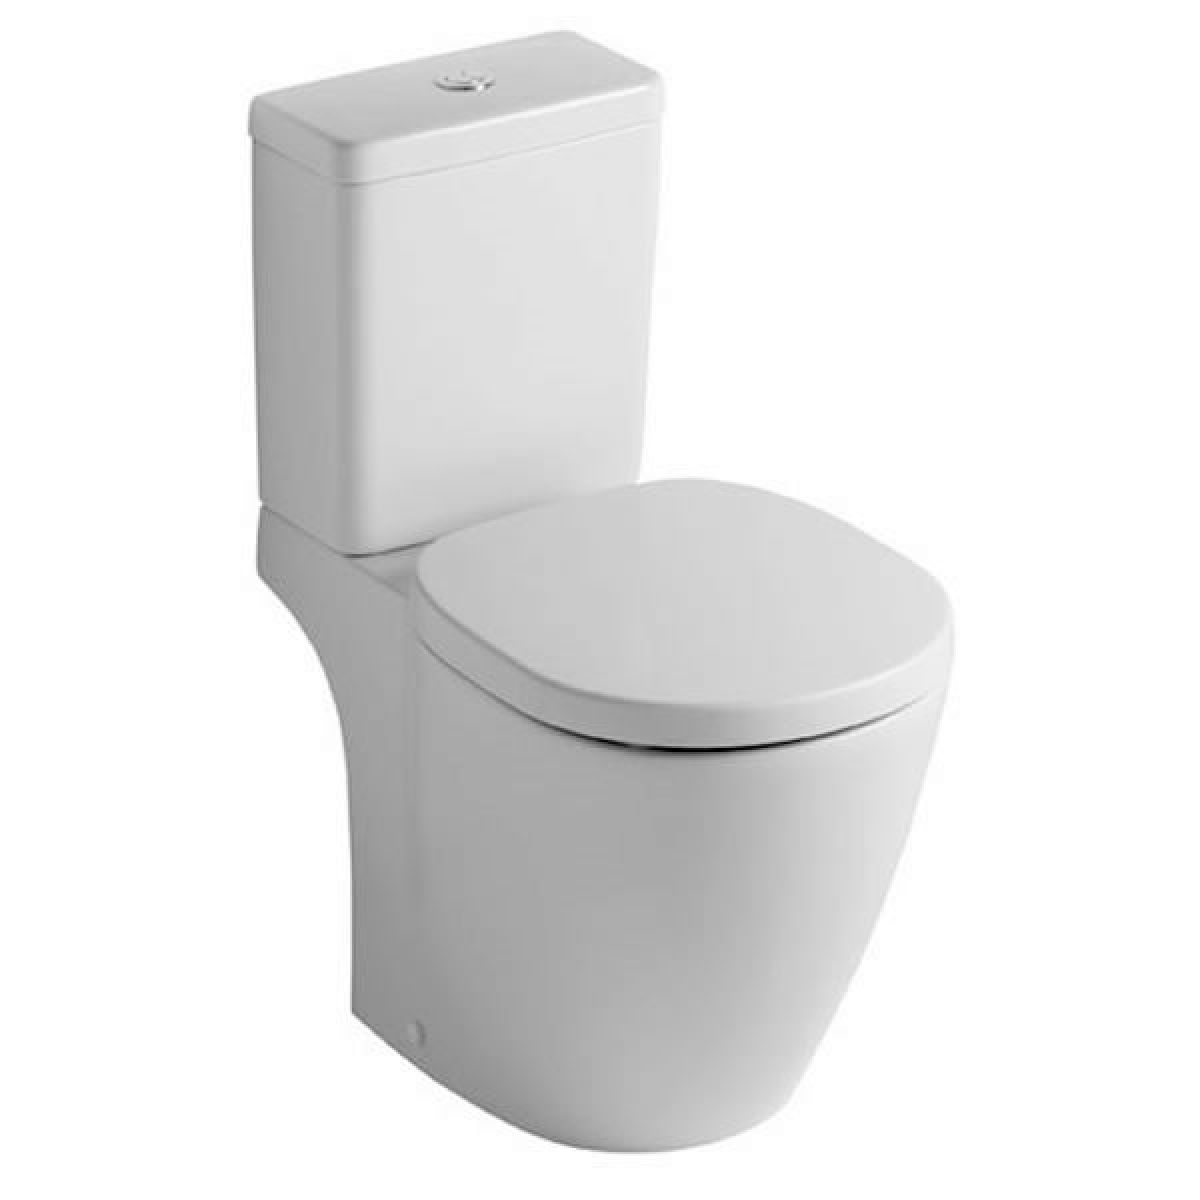 ideal standard concept cube close coupled toilet uk bathrooms. Black Bedroom Furniture Sets. Home Design Ideas